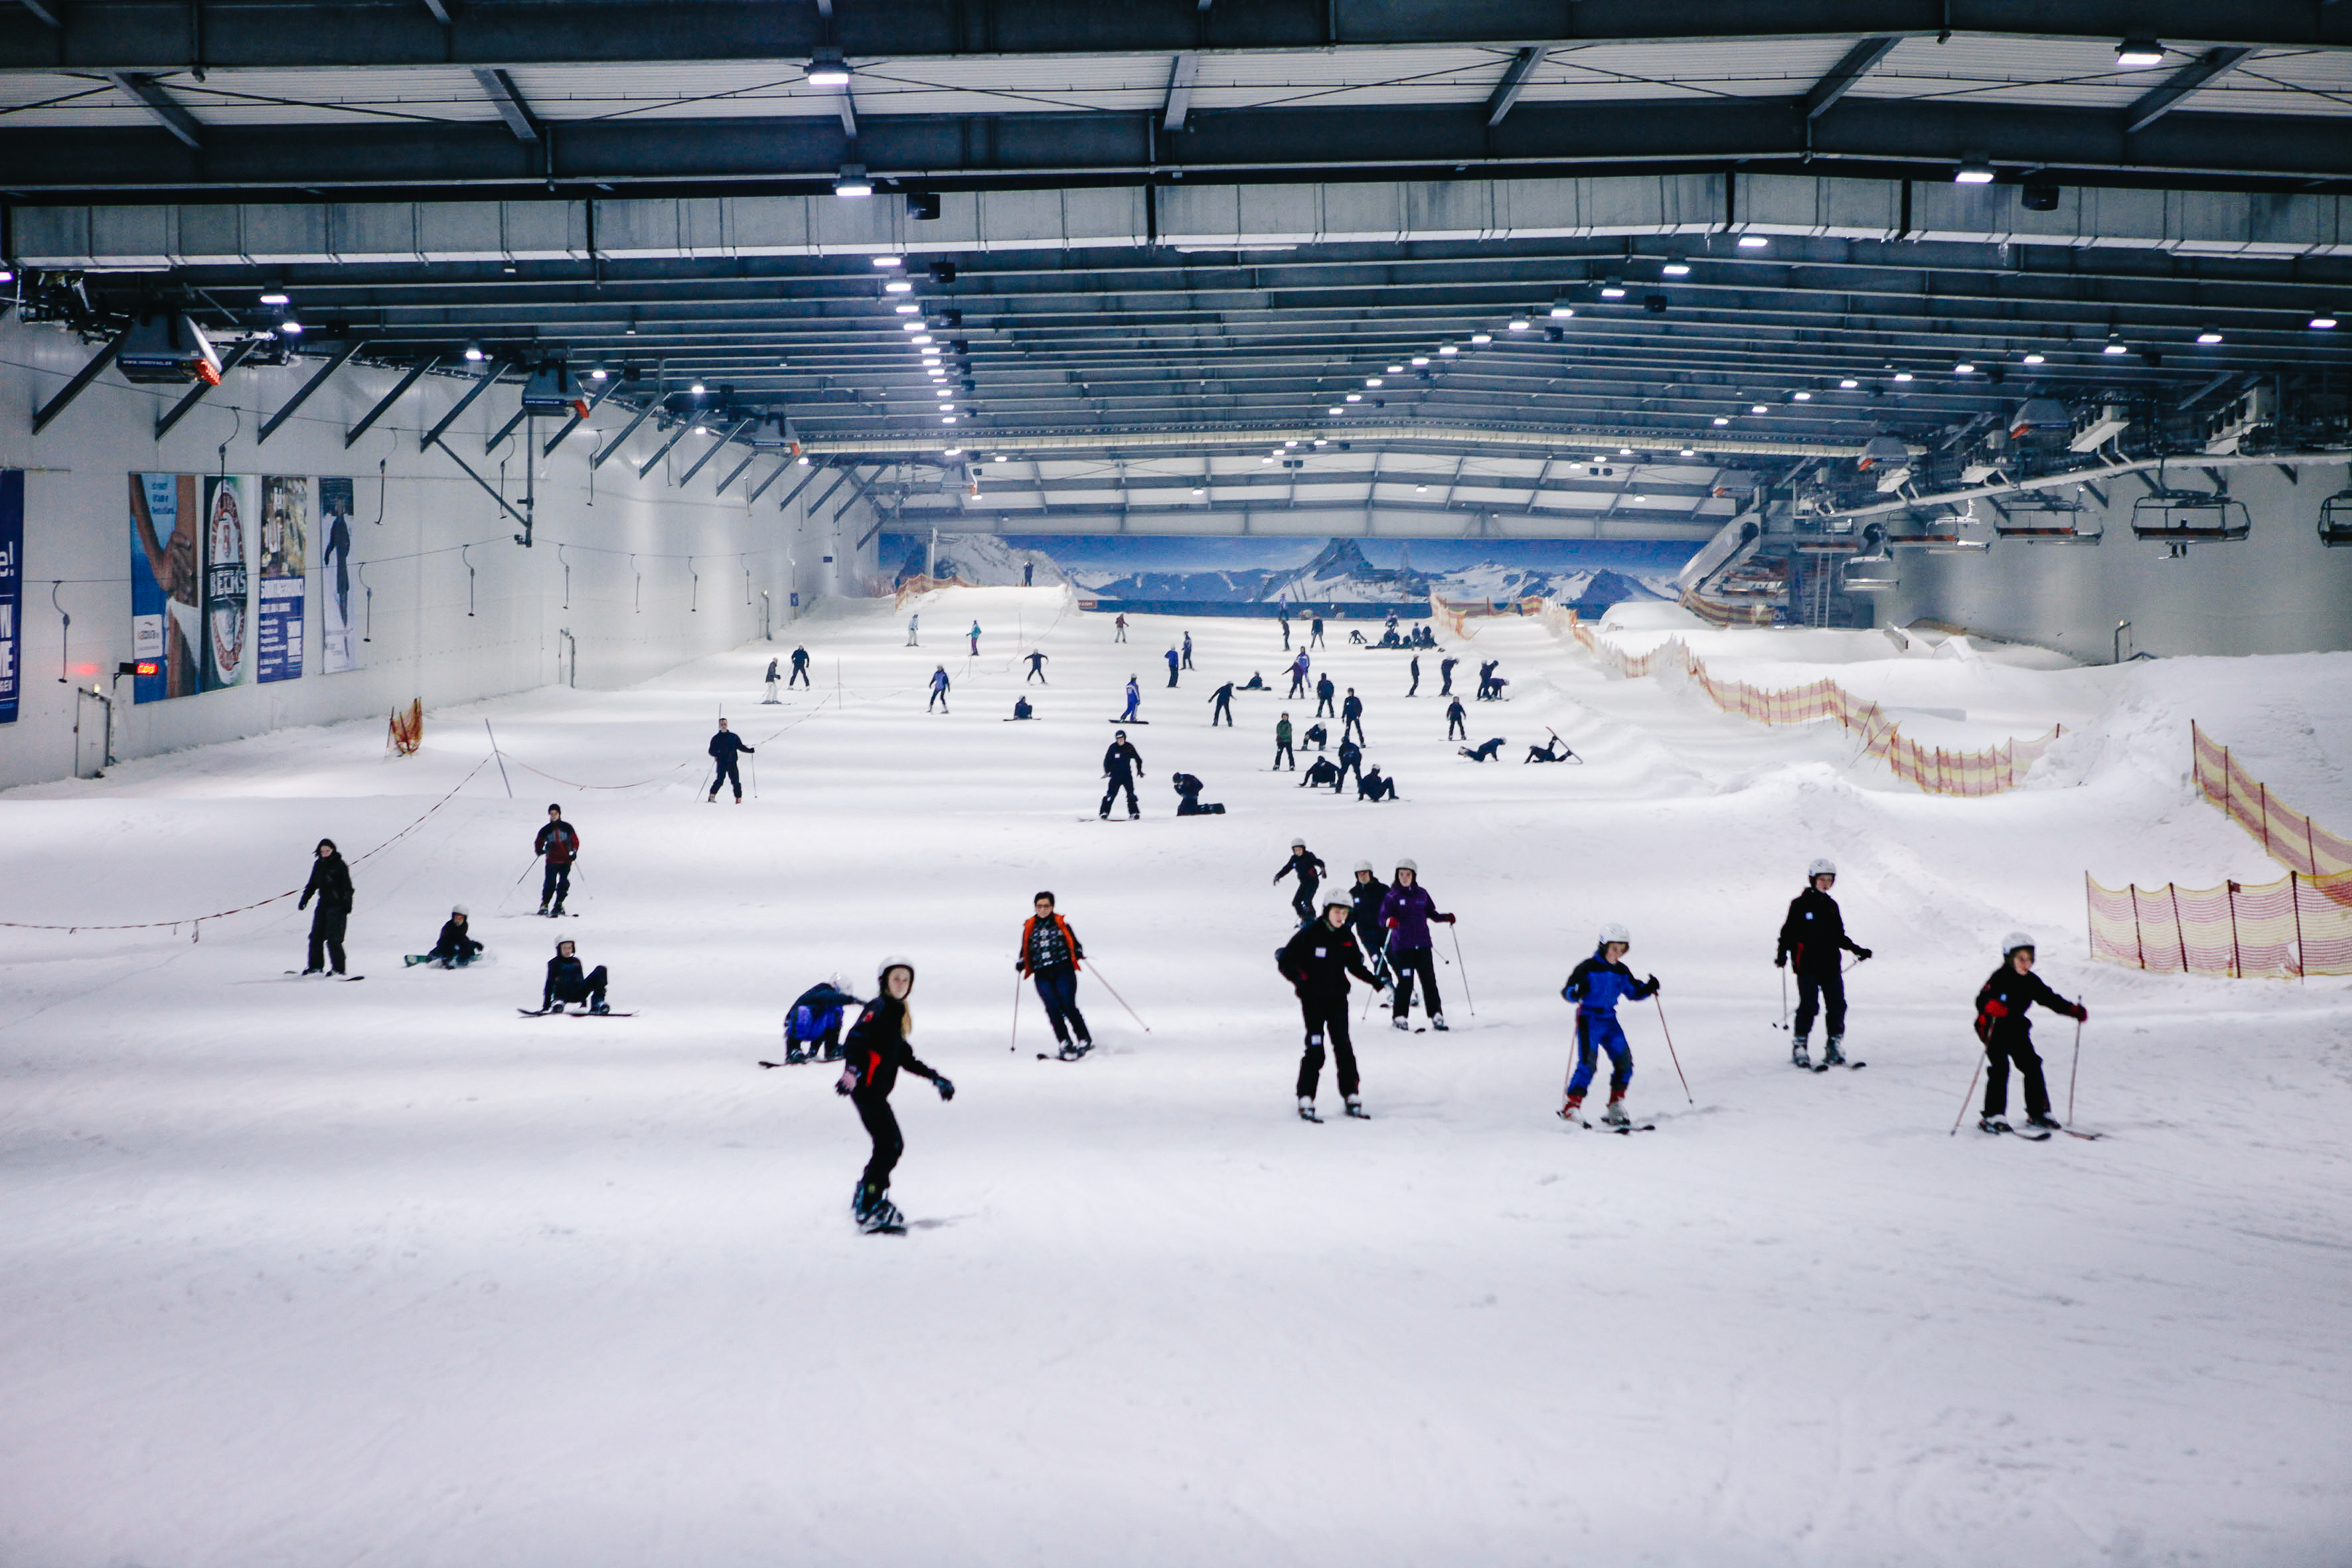 snow-dome-skihalle